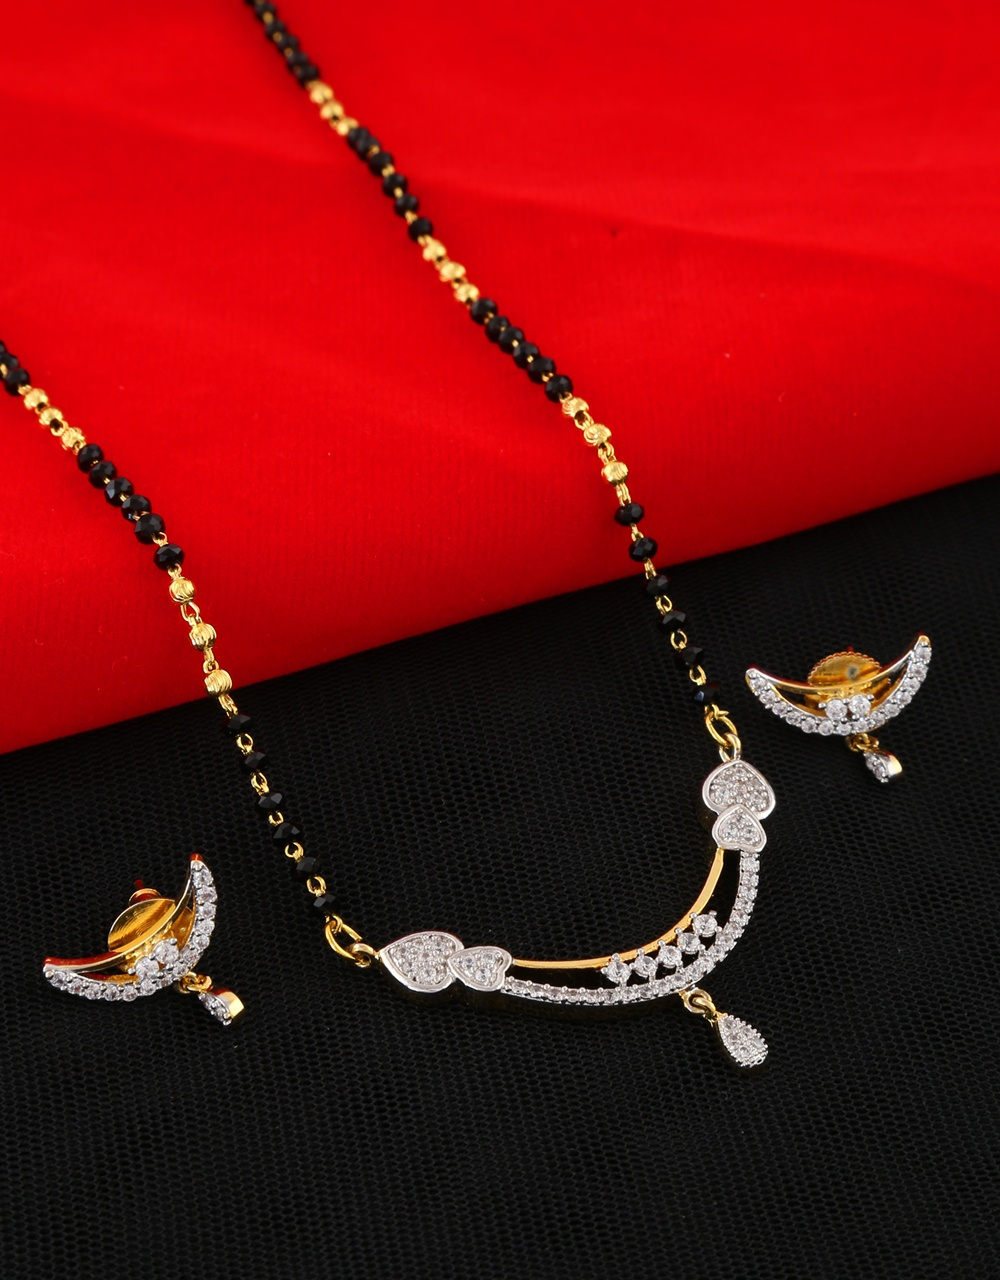 What is a mangalsutra? - Quora